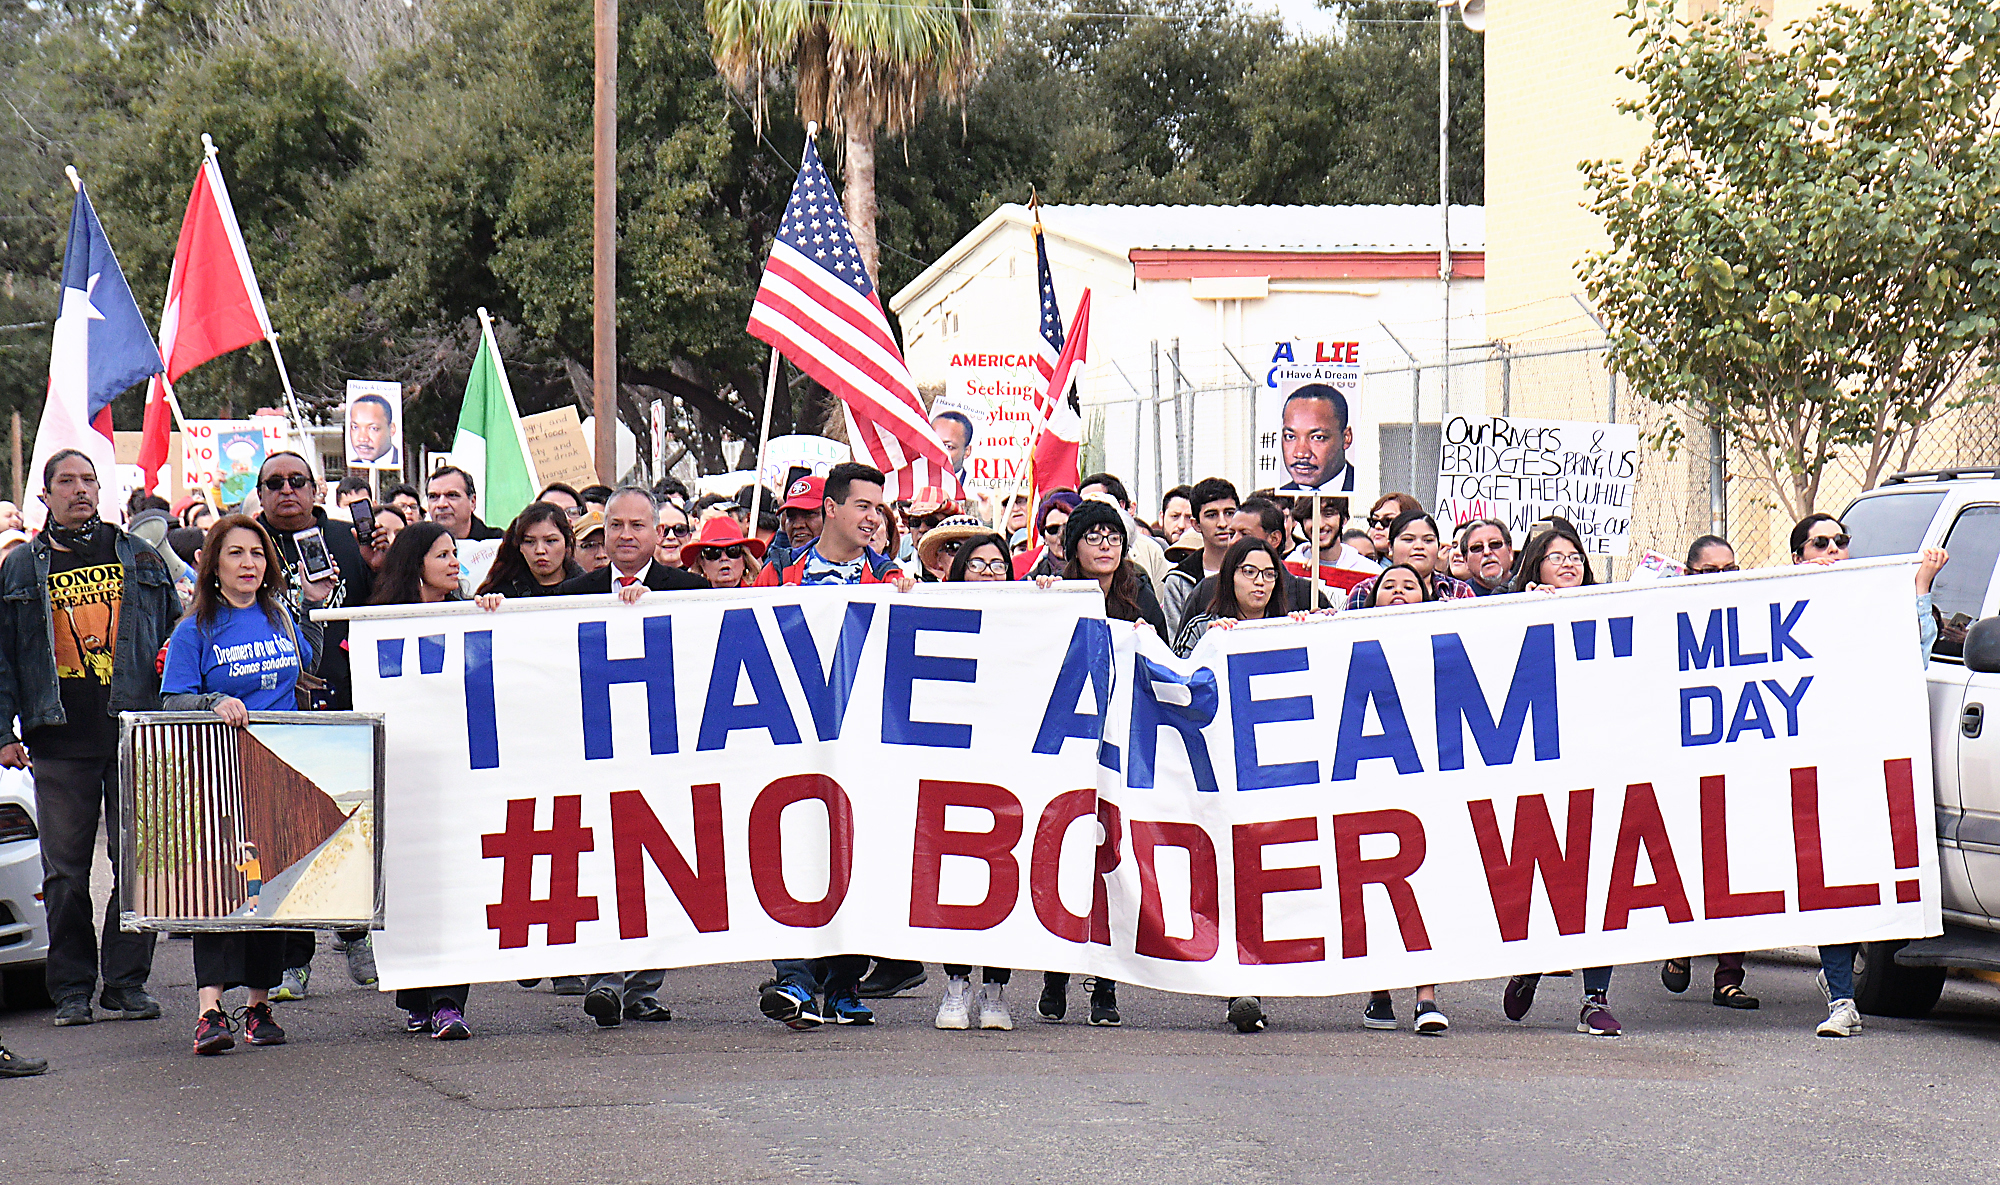 Hundreds of locals march against border wall on MLK Day